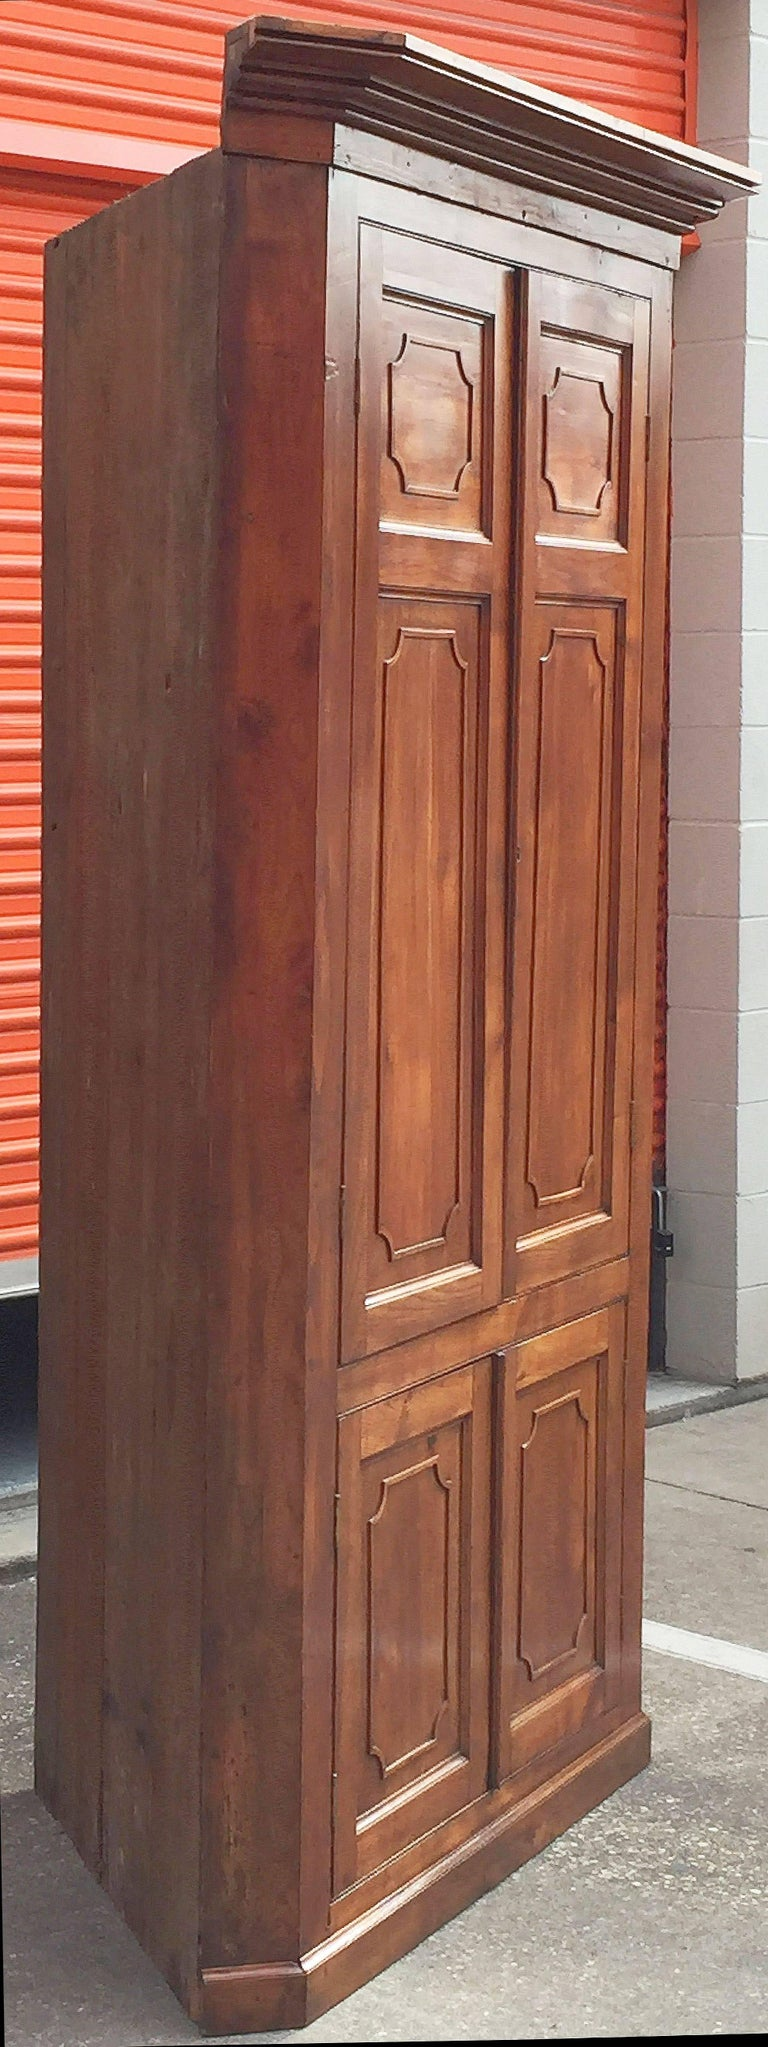 Large Two Tiered Corner Cabinet Or Cupboard Of Cherry With